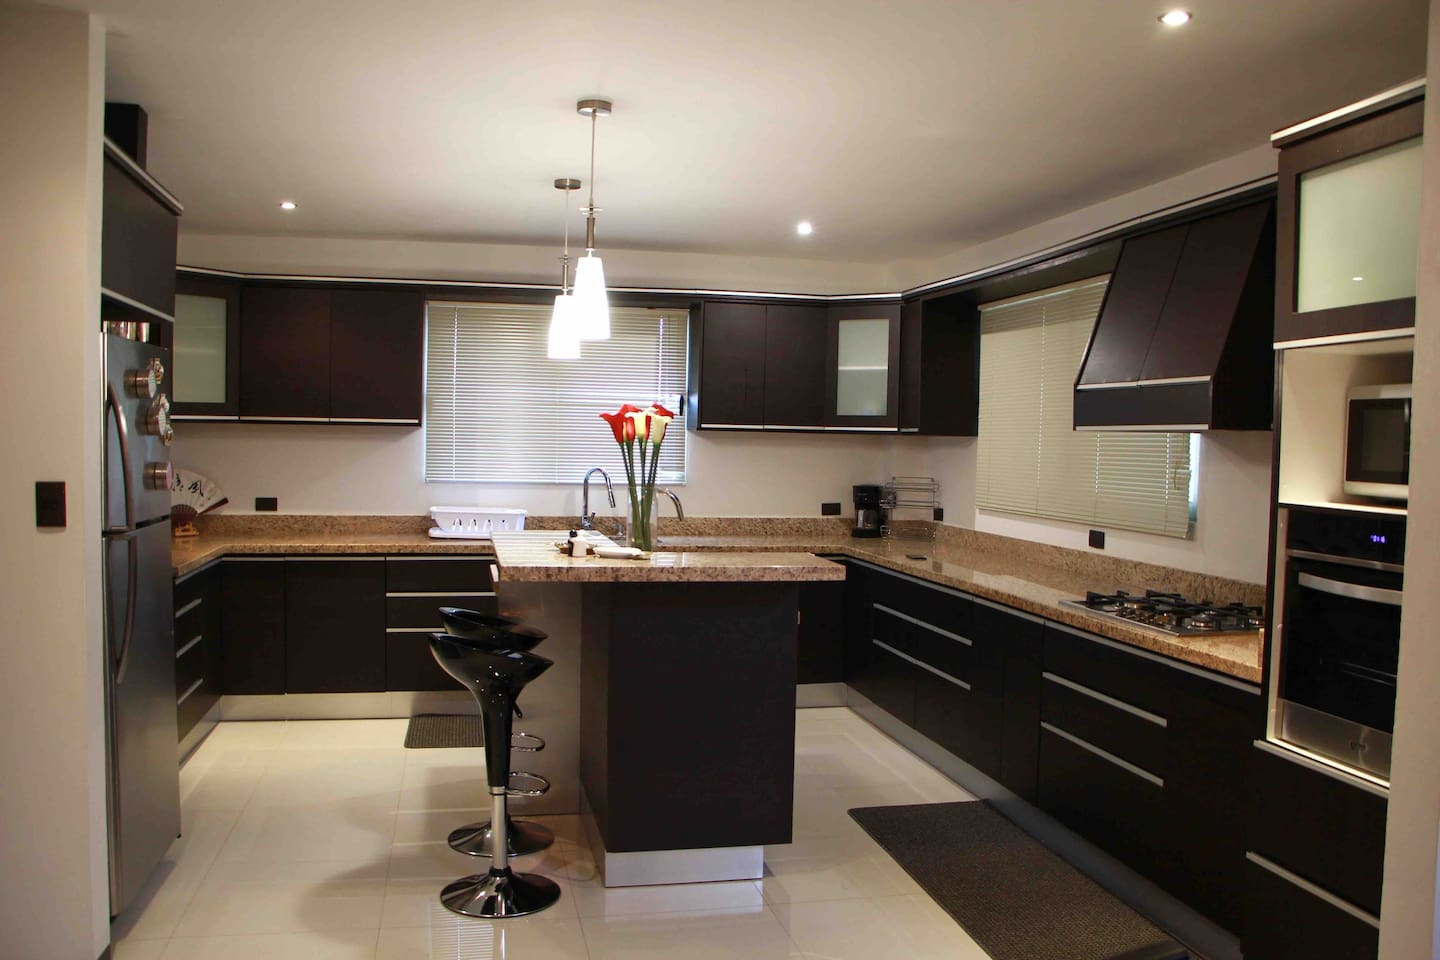 Full well equipped kitchen